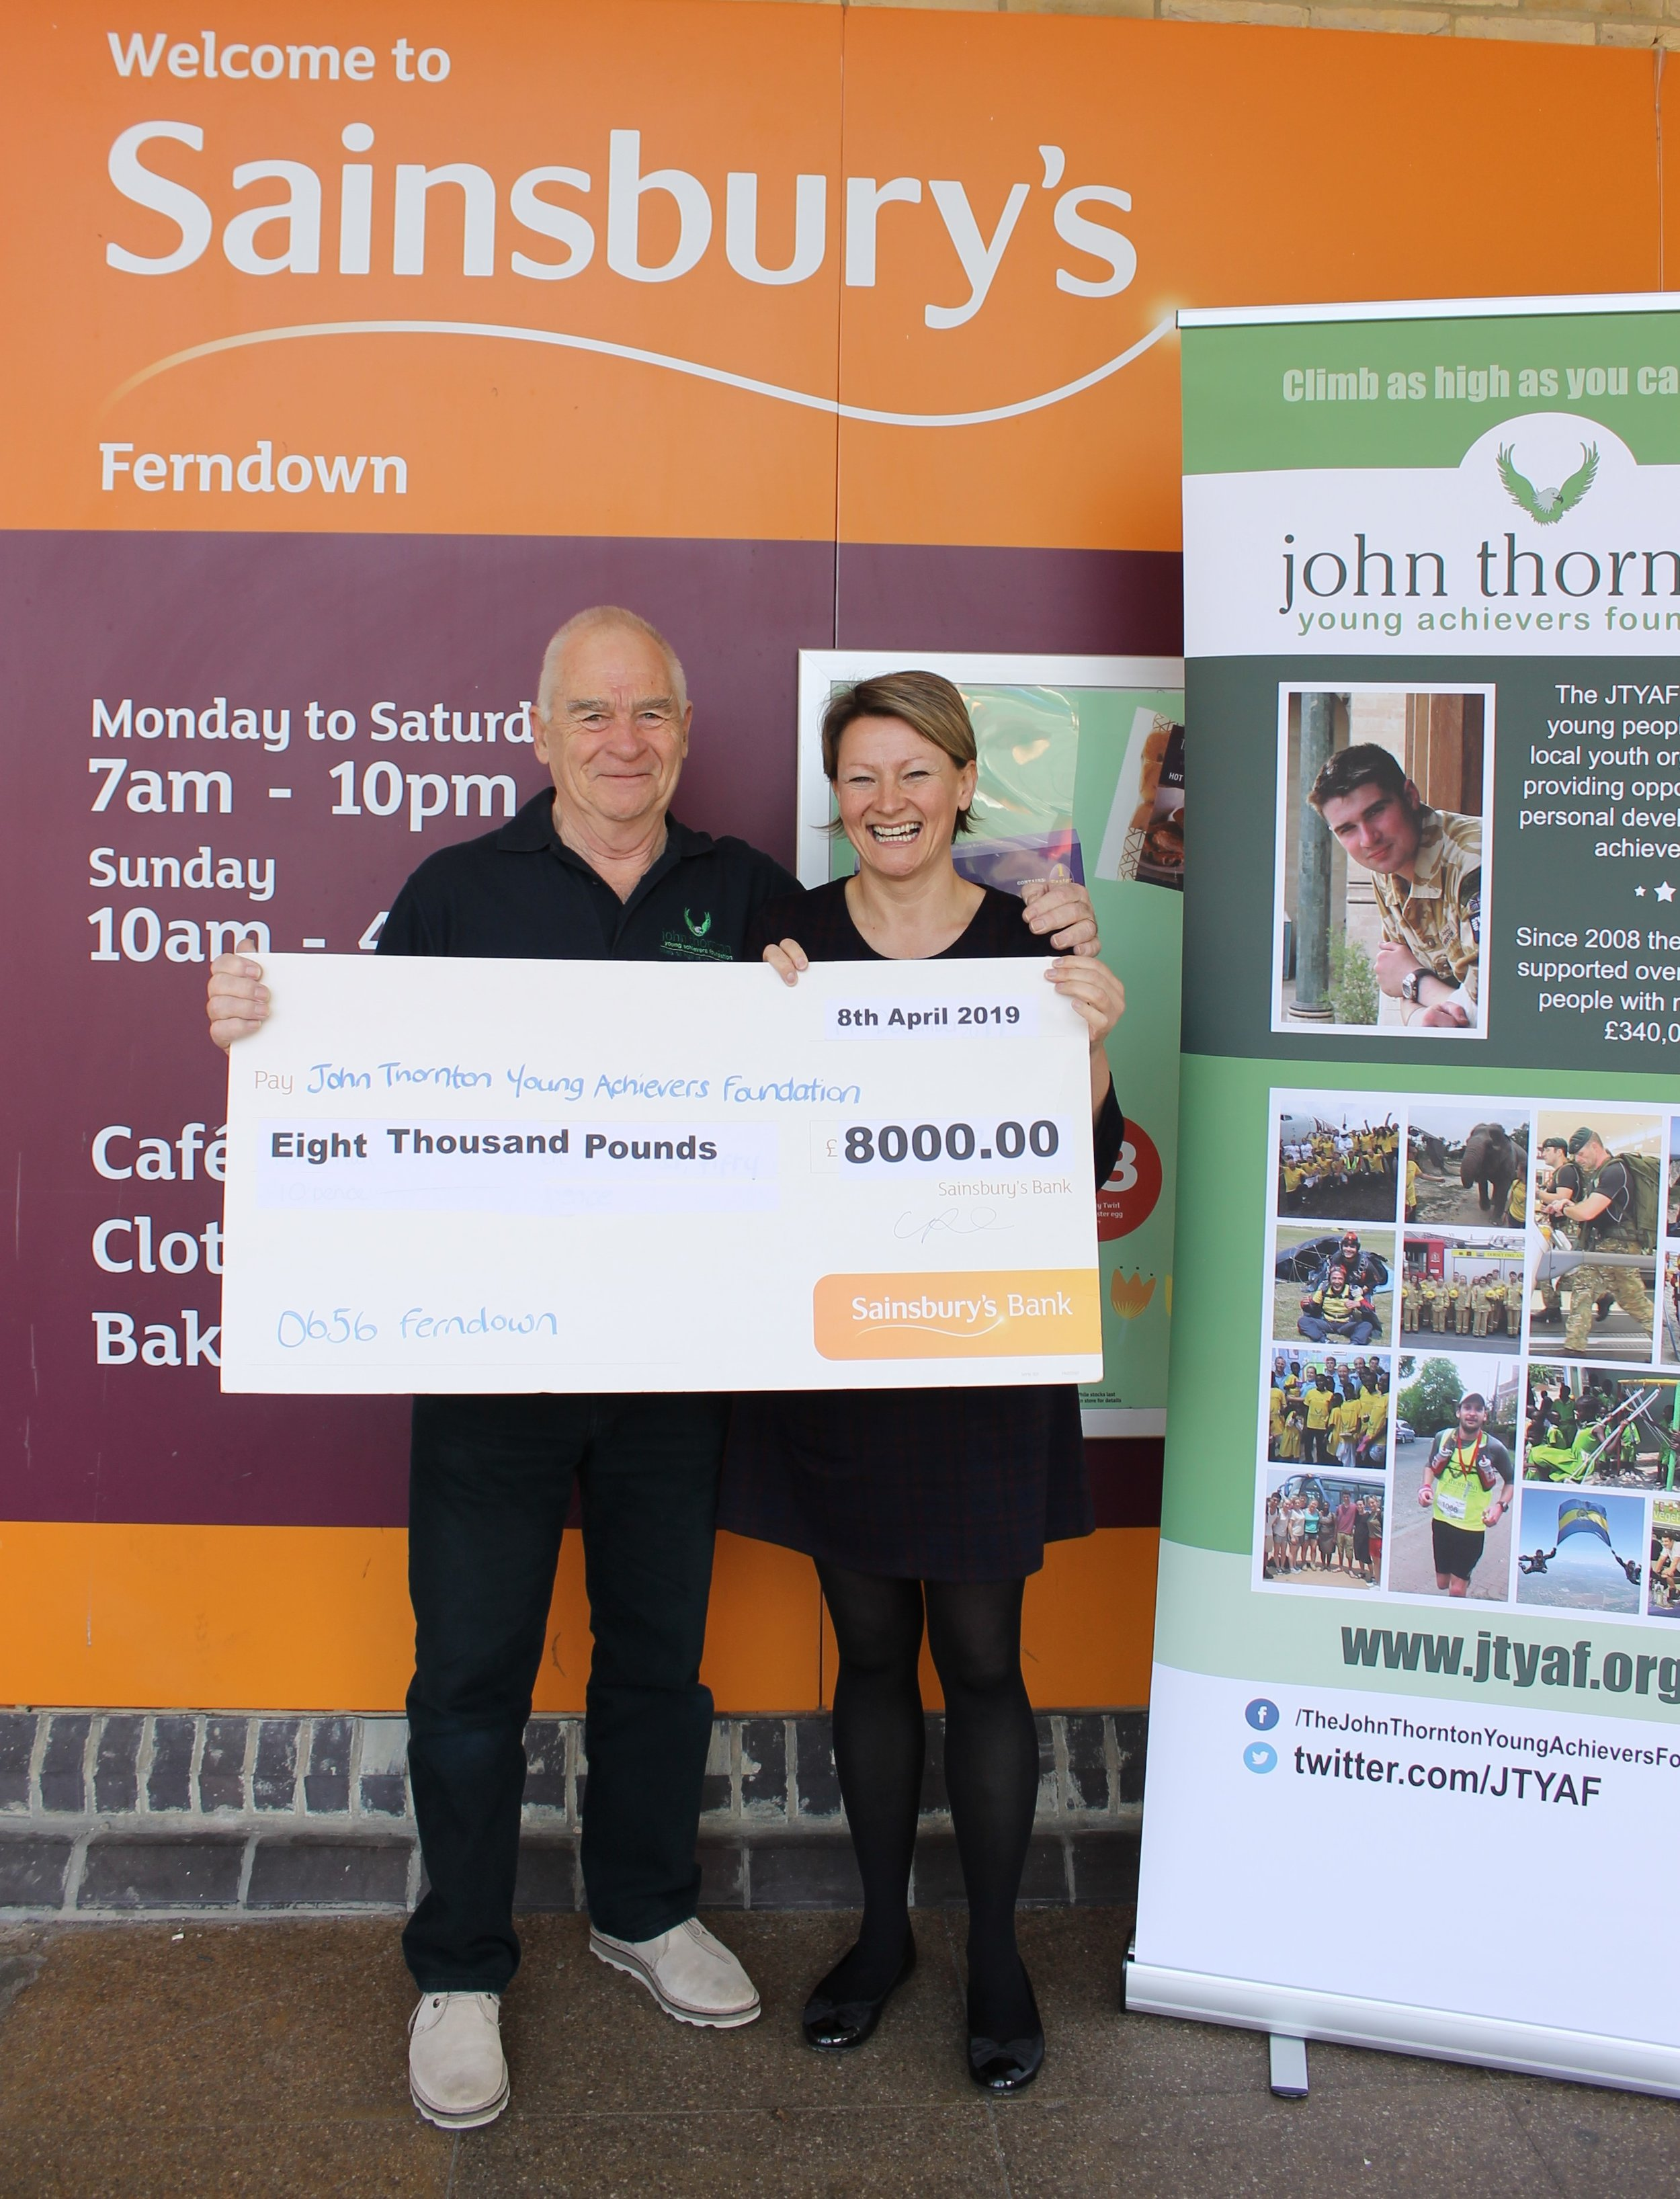 Kerry presenting the big cheque to Pete Thornton, Chairman of the JTYAF